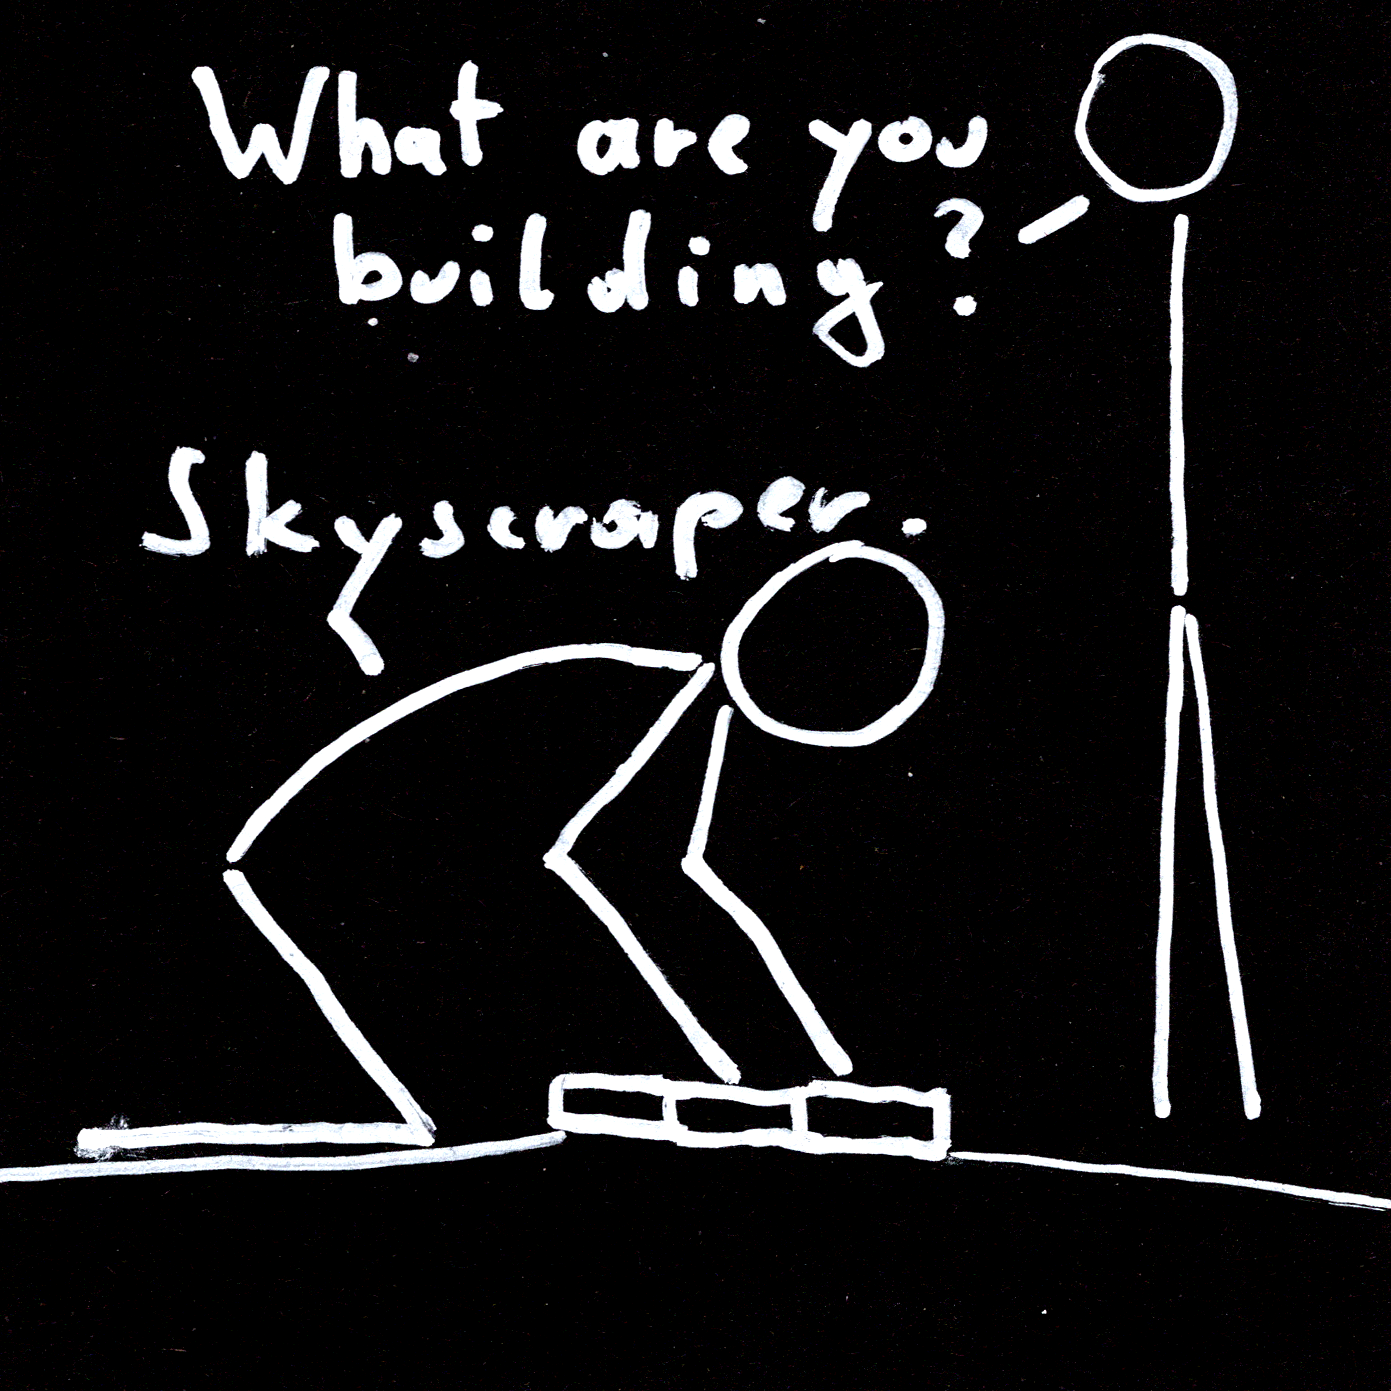 What are you building? Skyscraper.